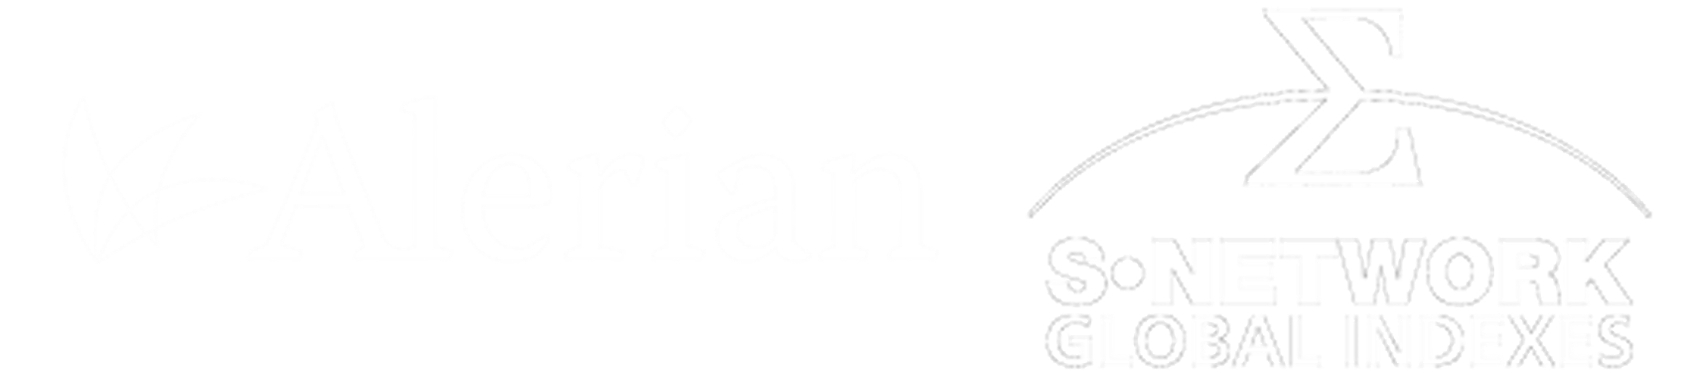 preview-Alerian-S-Network-joint-logo-white-noback.png